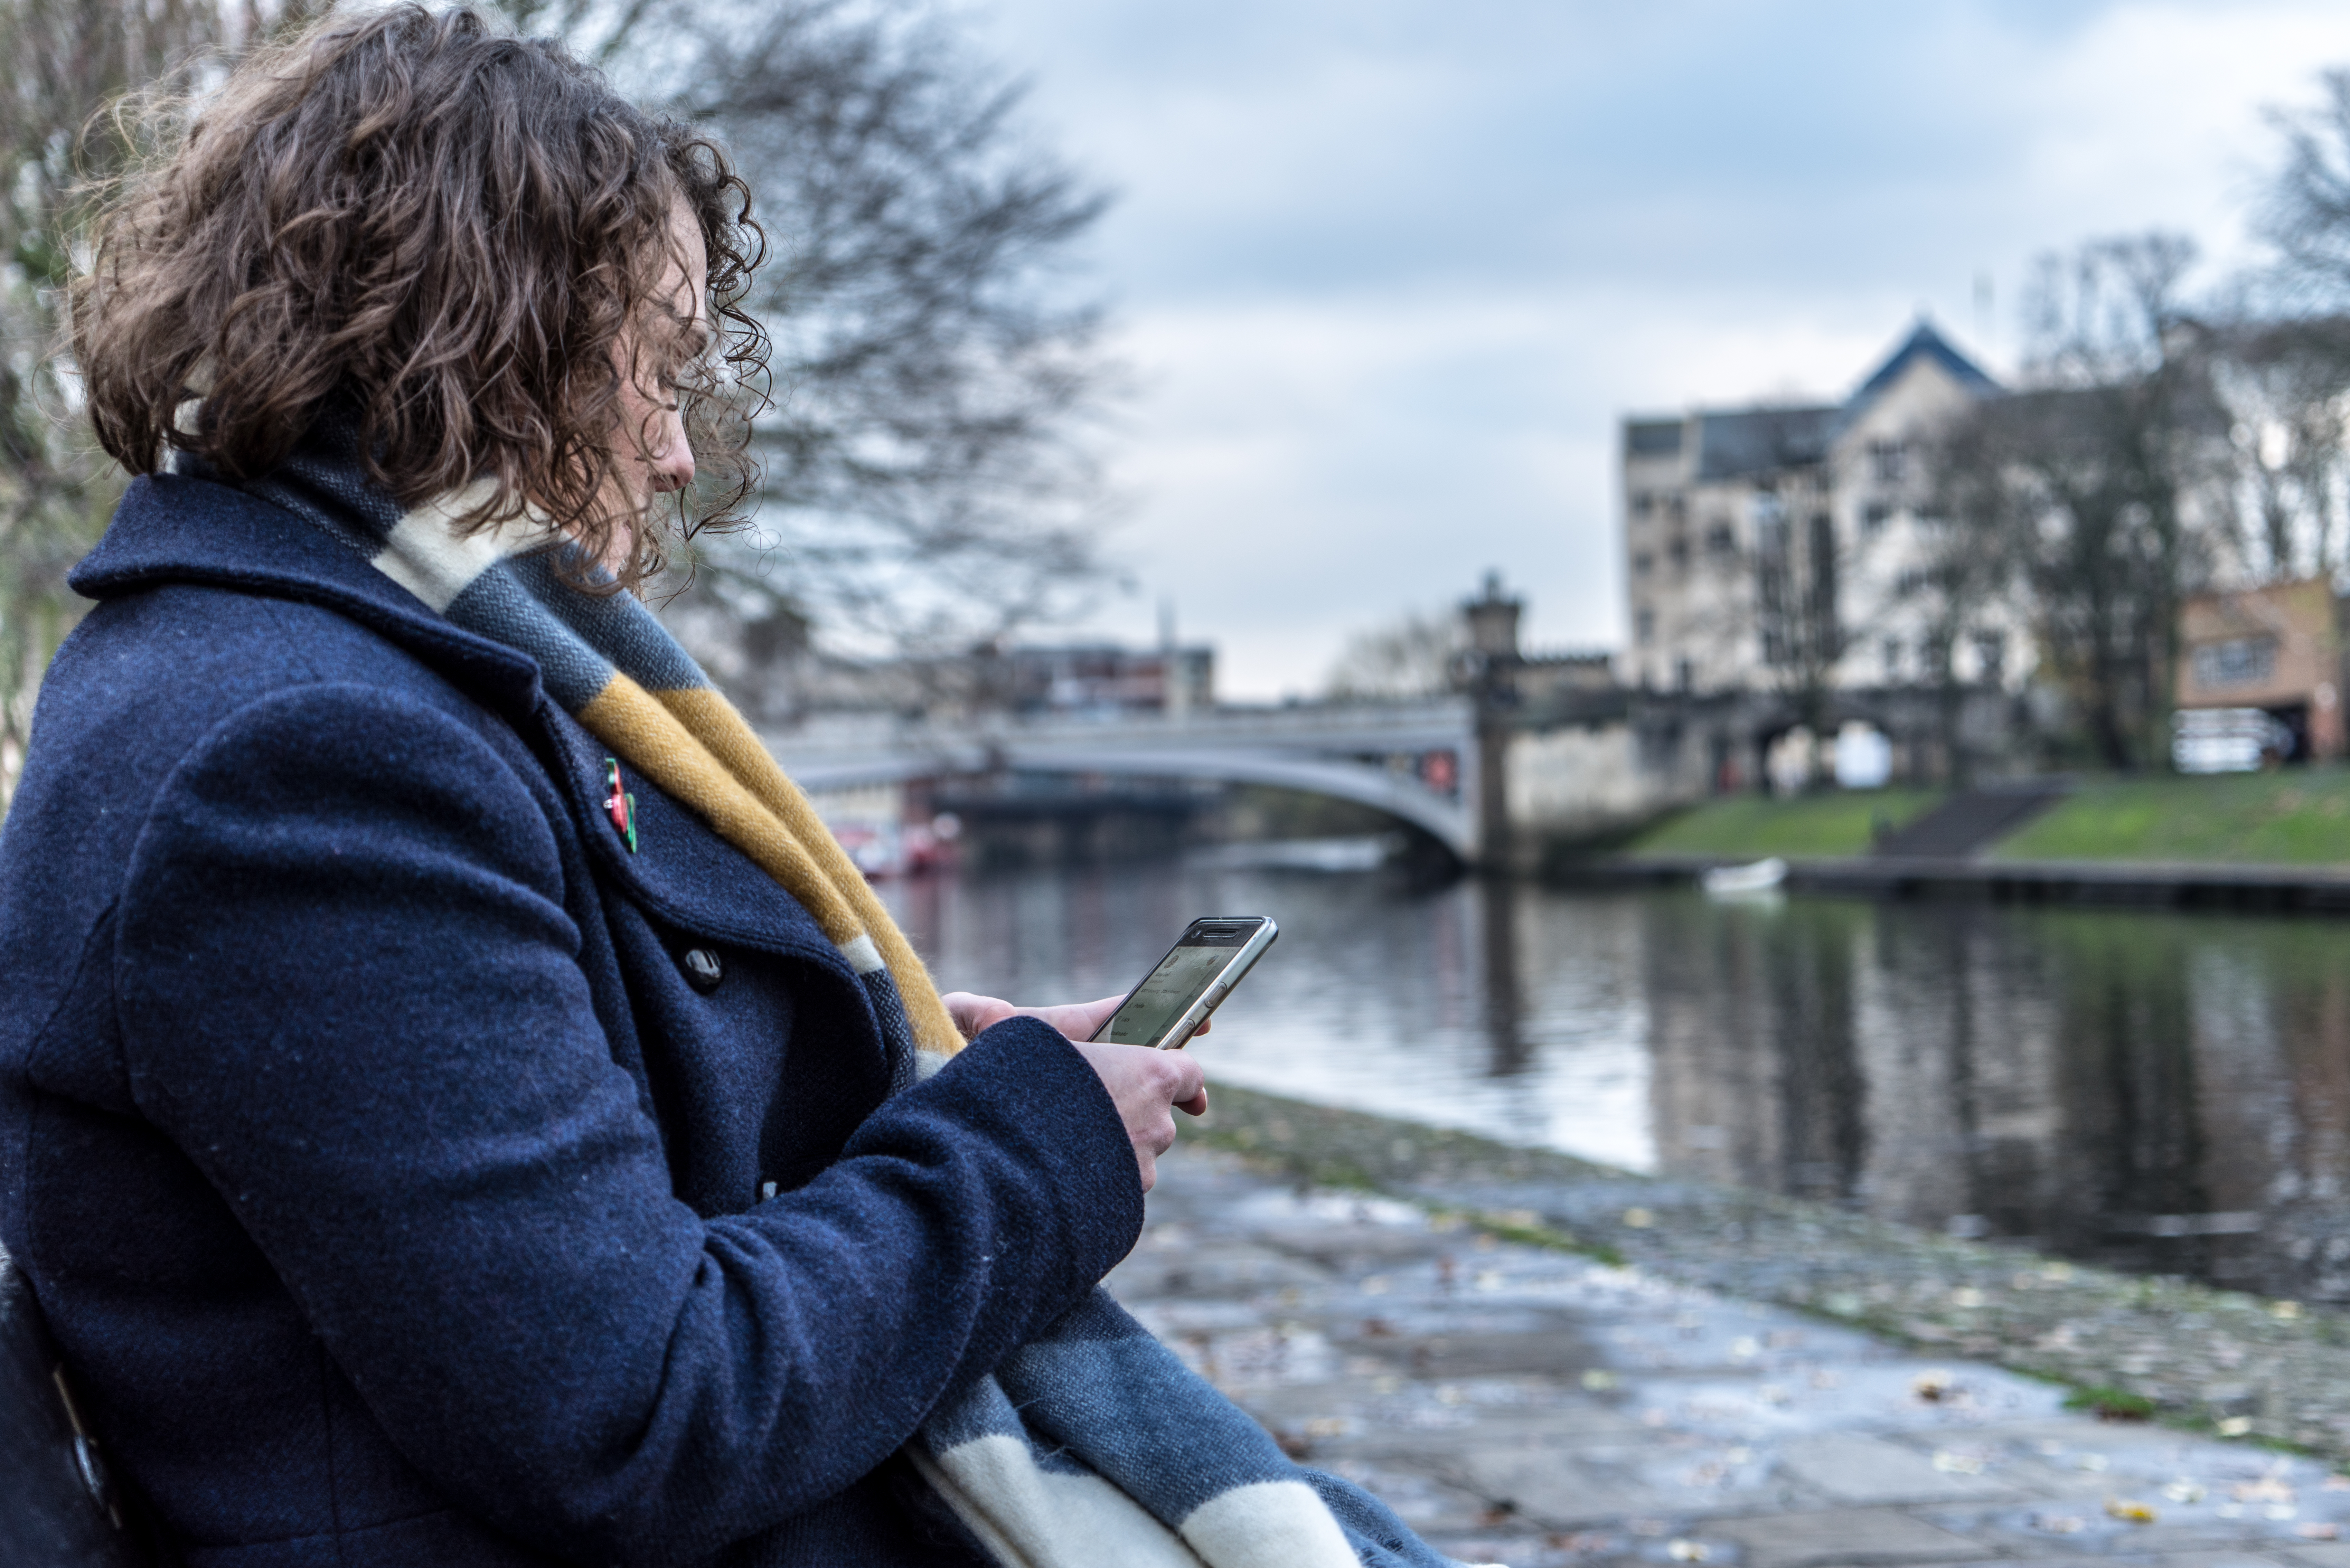 Amy sits on a bench overlooking the river ouse, using her phone